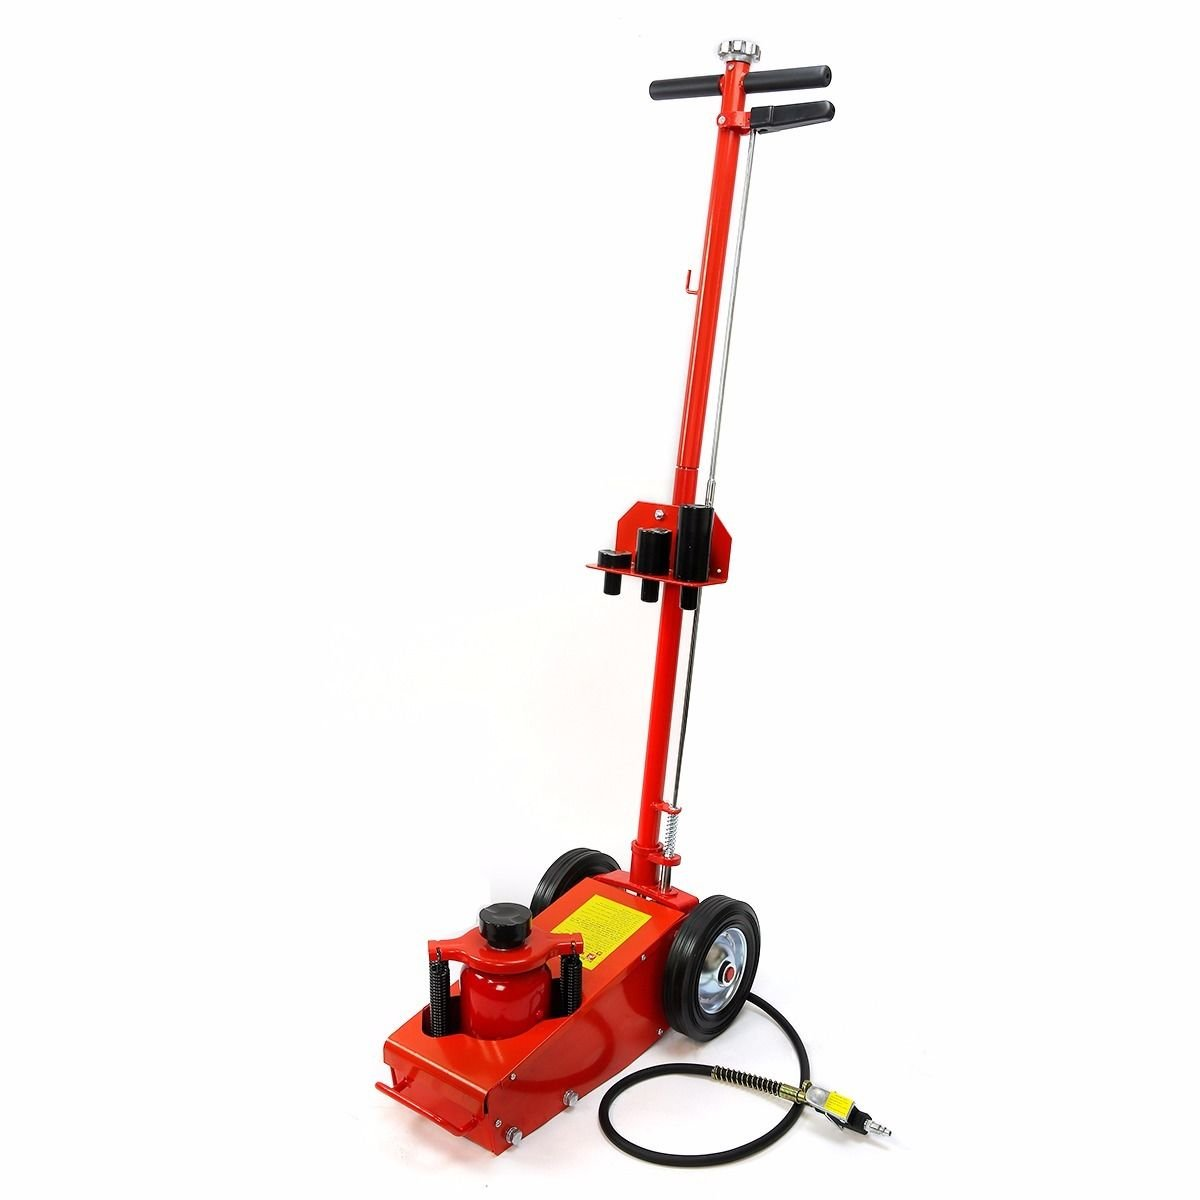 Hydraulic Floor Jack Rubber Wheels Truck Heavy Duty Power Lift Auto Repair Bottle Jack 22 Ton Air Capacity Ram - House Deals